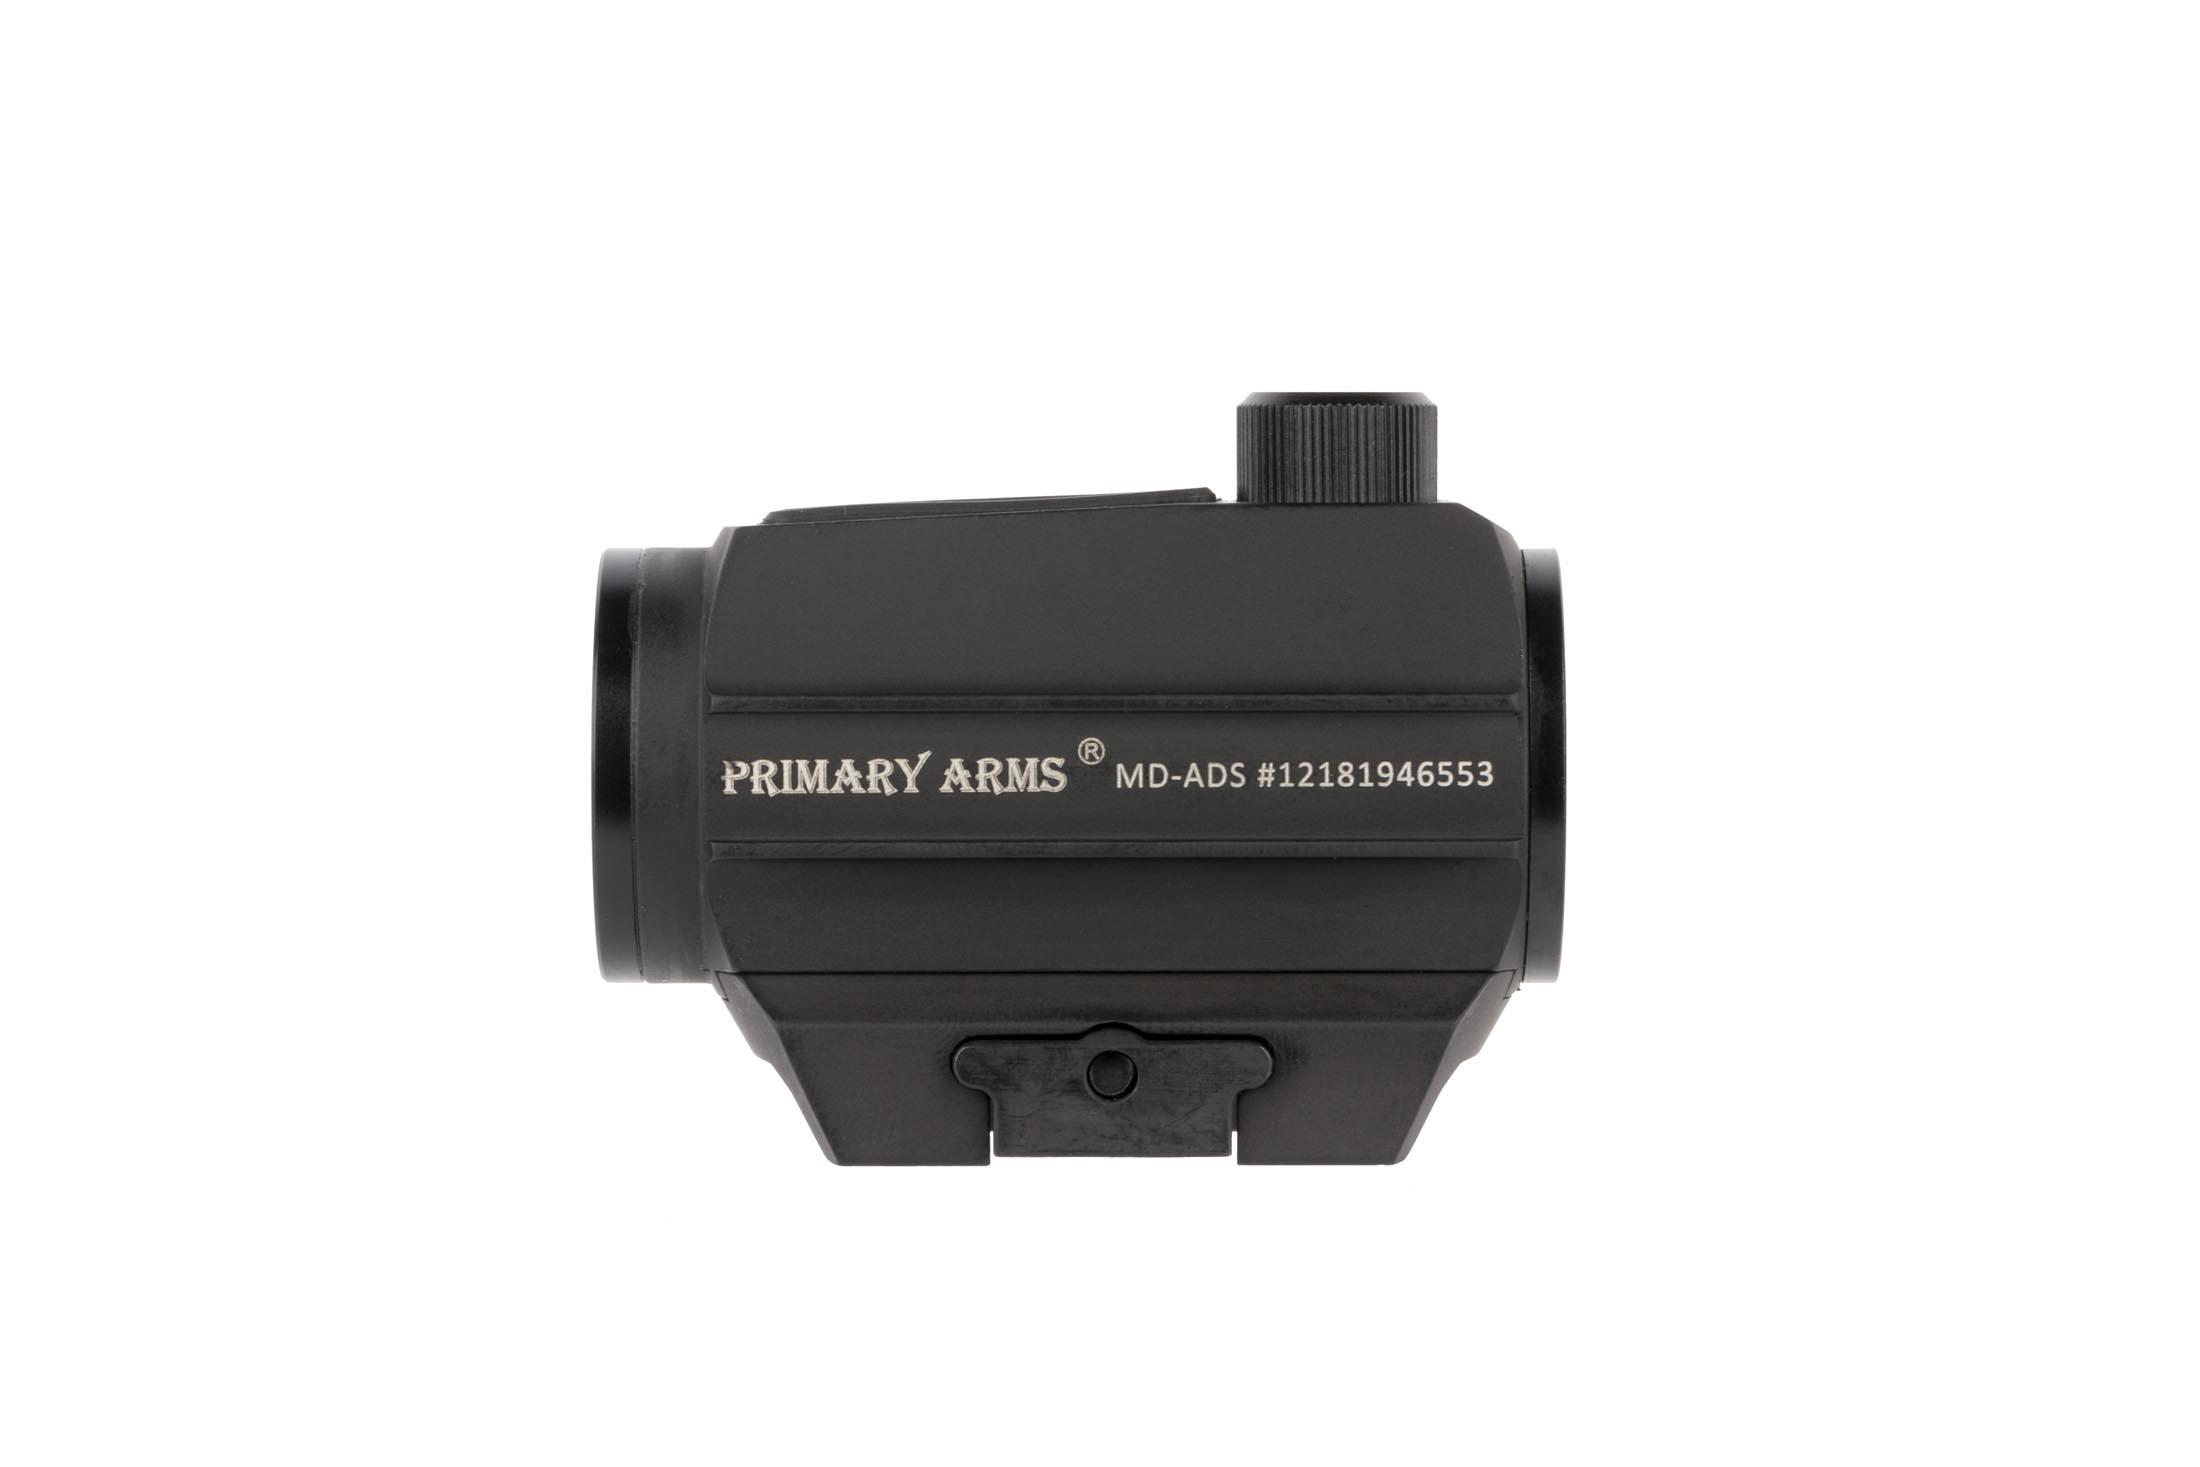 Primary Arsm compact advanced micro red dot sight features a durable black hardcoat anodized finish